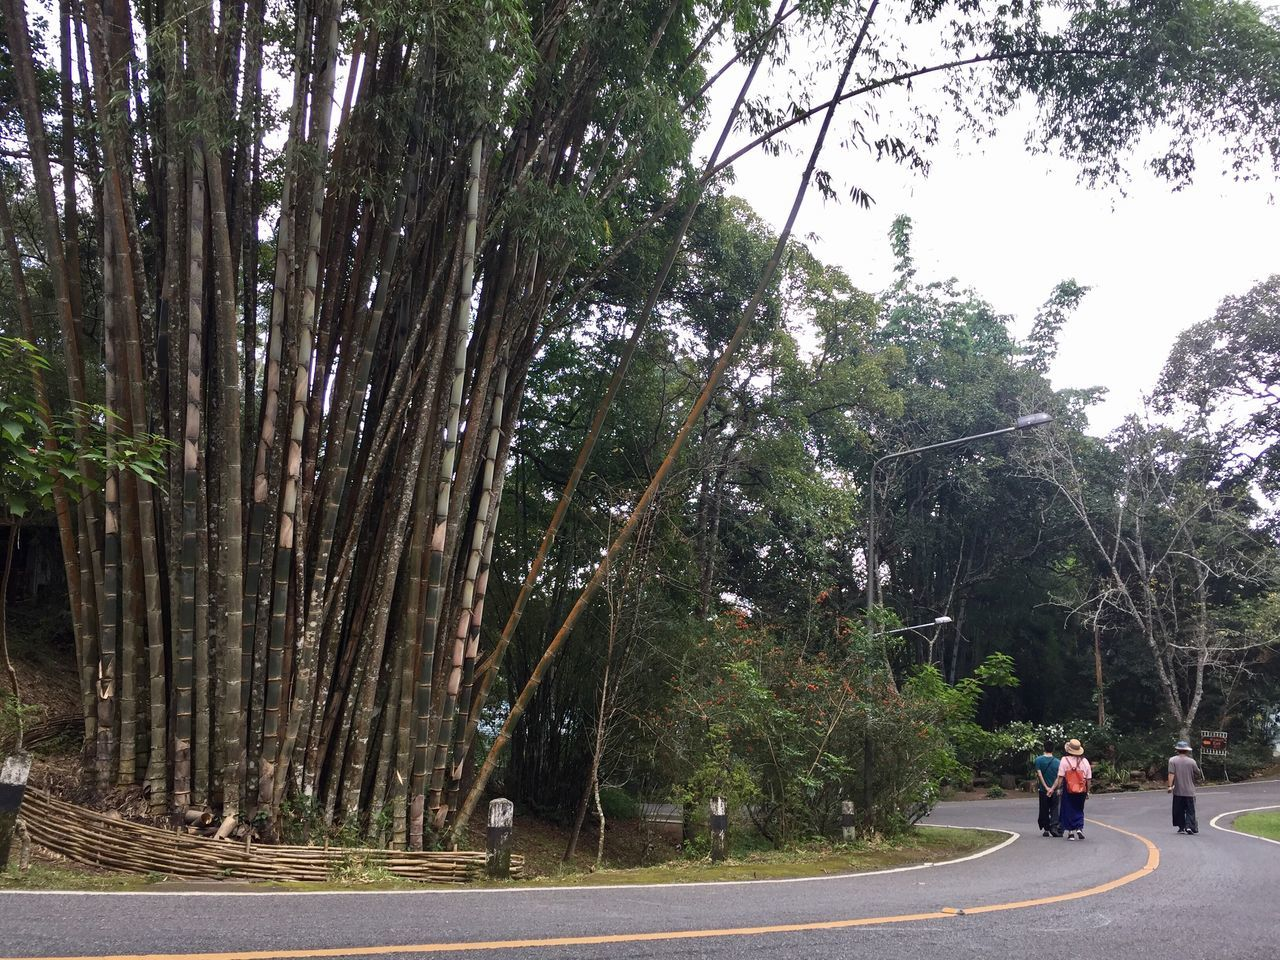 tree, road, street, outdoors, day, transportation, real people, growth, men, two people, nature, full length, sky, people